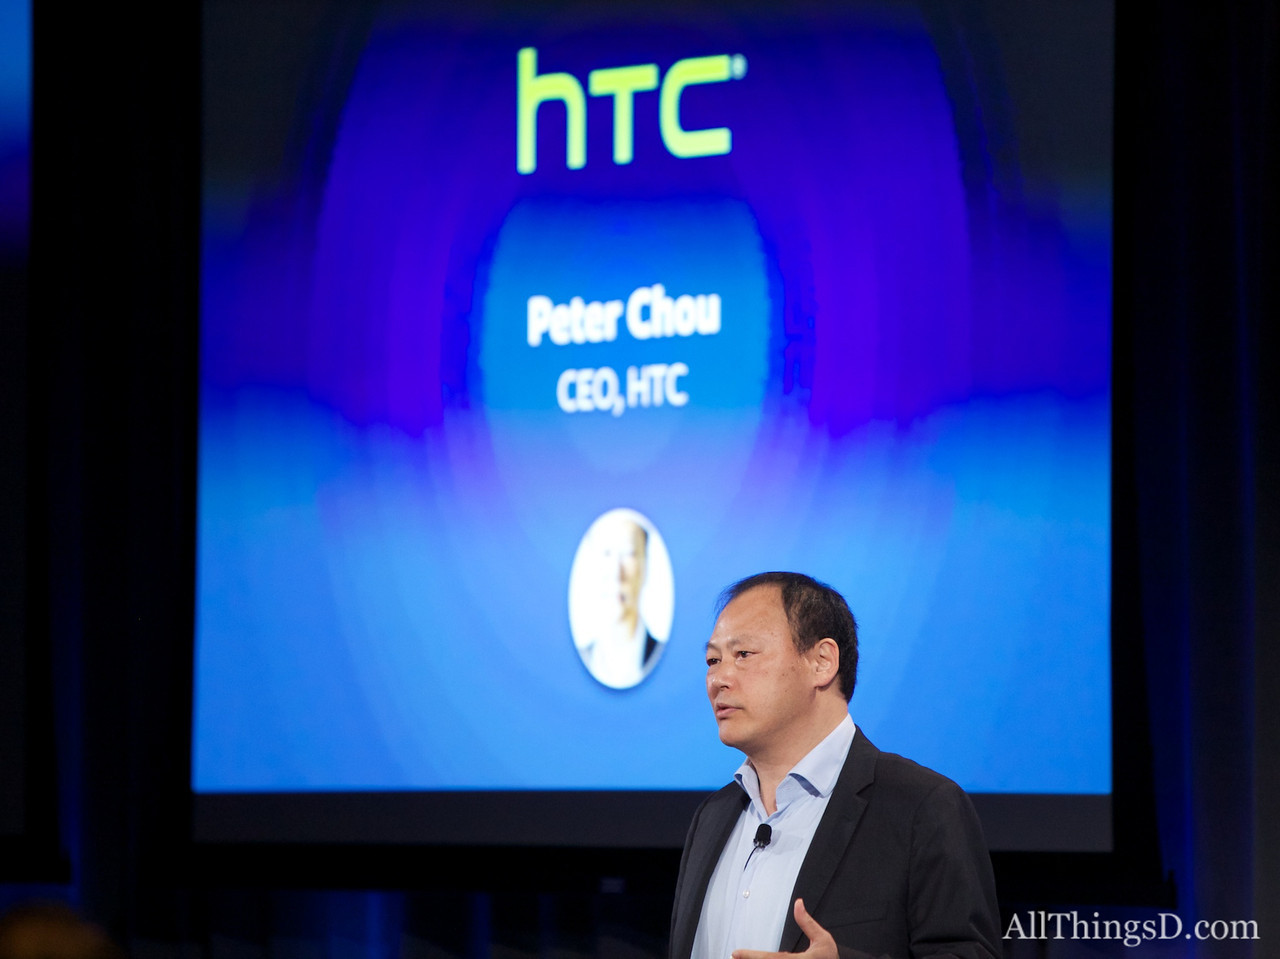 Can a One-Two Punch of Launches Help HTC Fight Back?